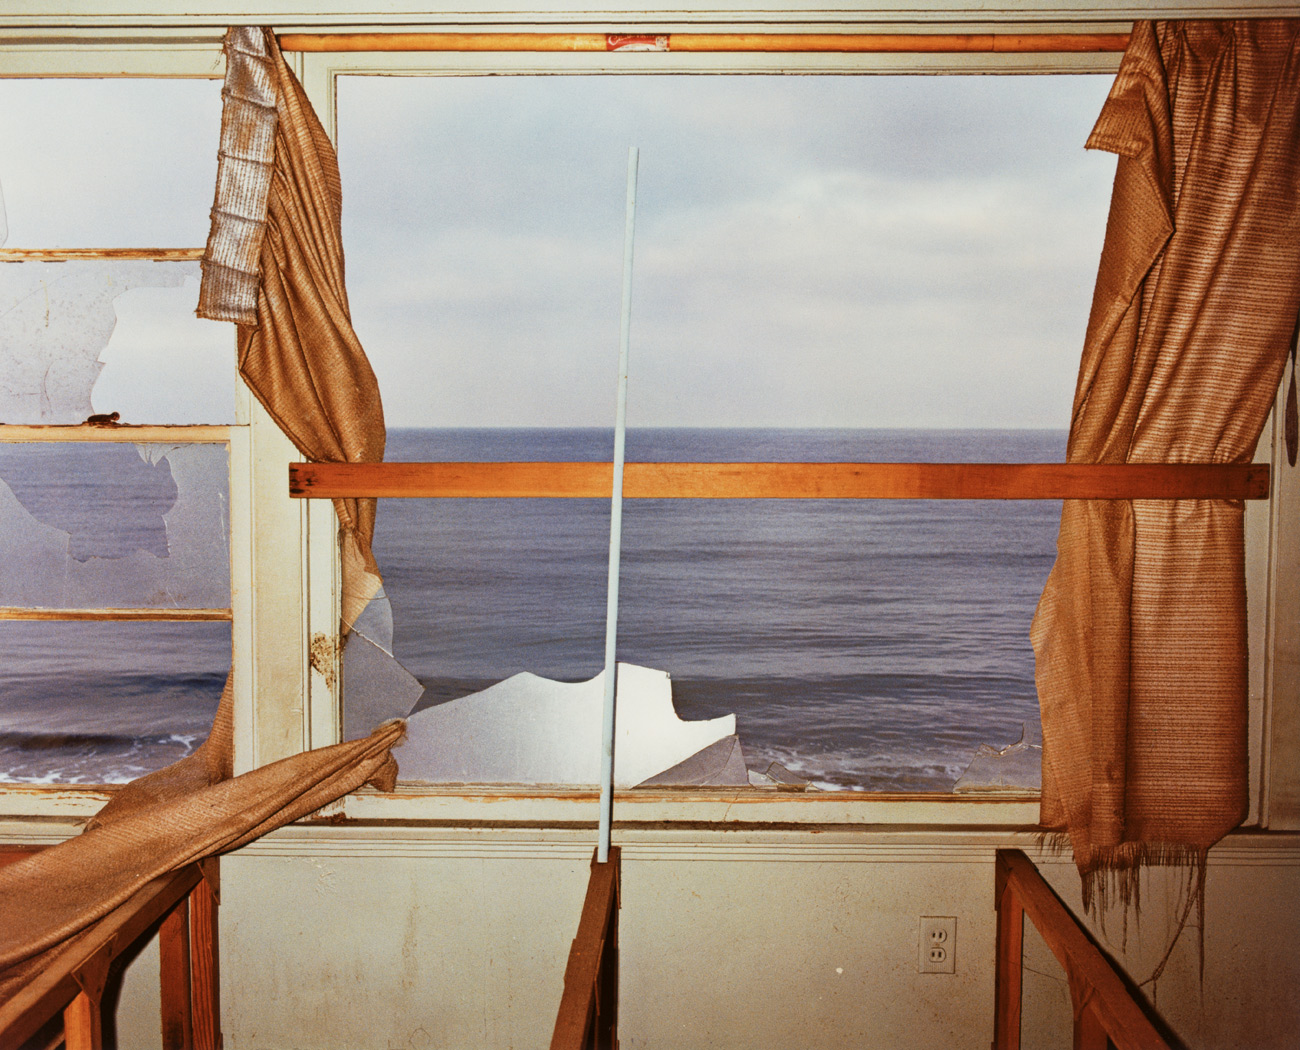 View of the ocean as seen from inside a broken window with tattered curtains falling off the rods.